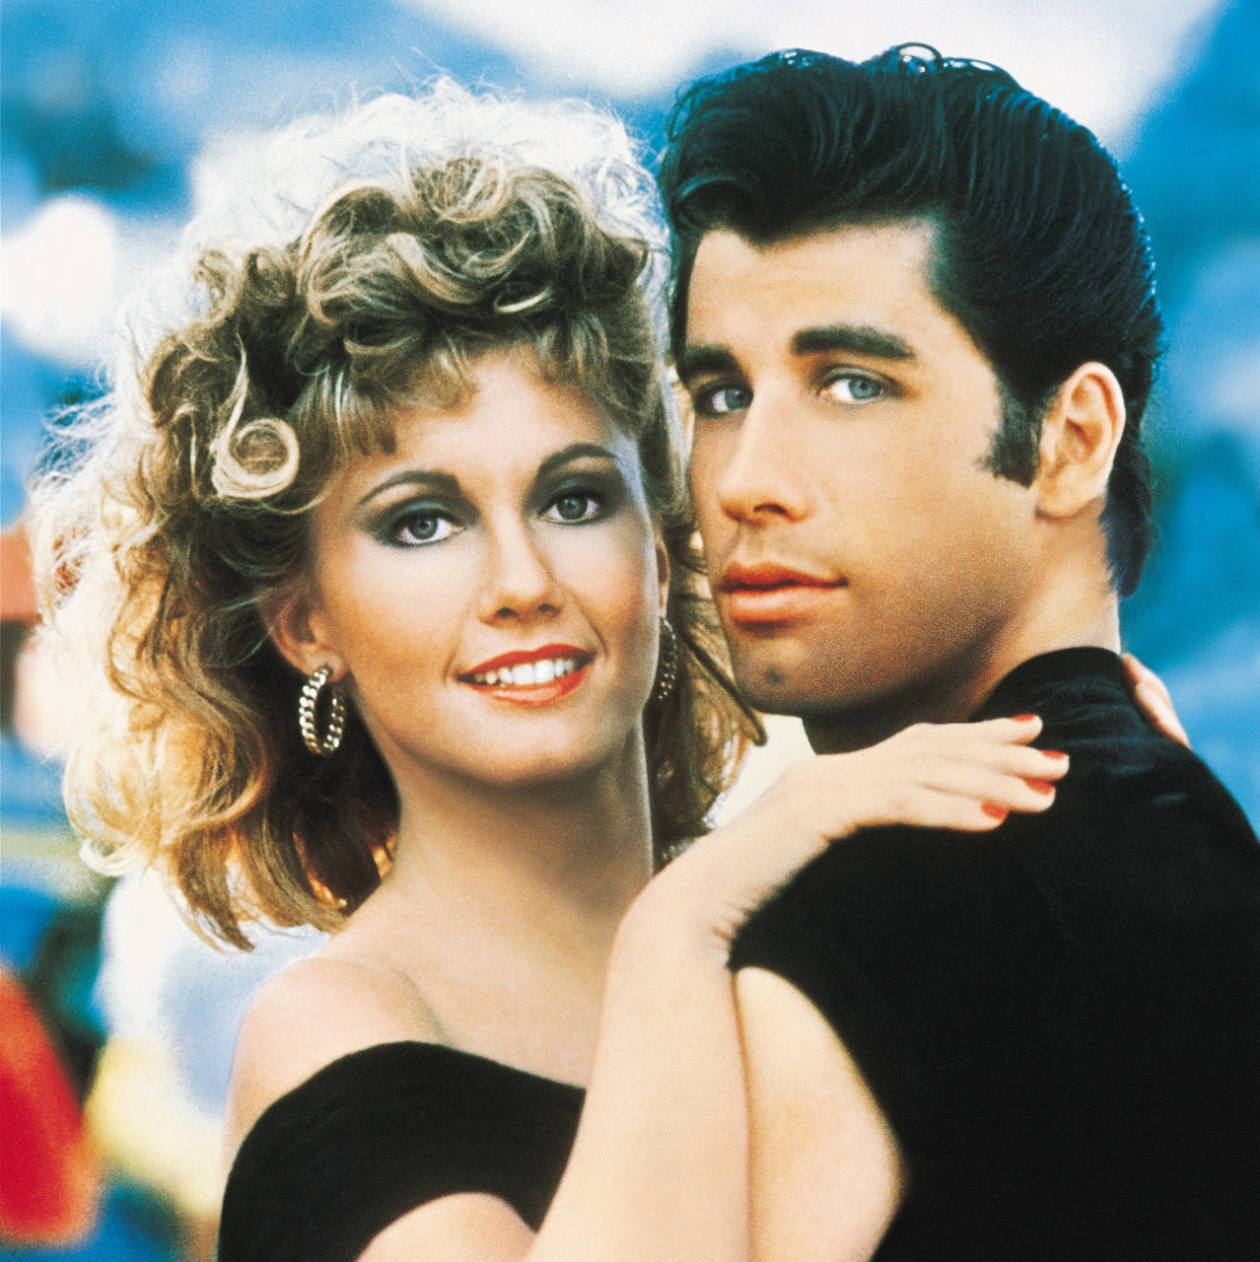 grease2_Easy-Resize.com